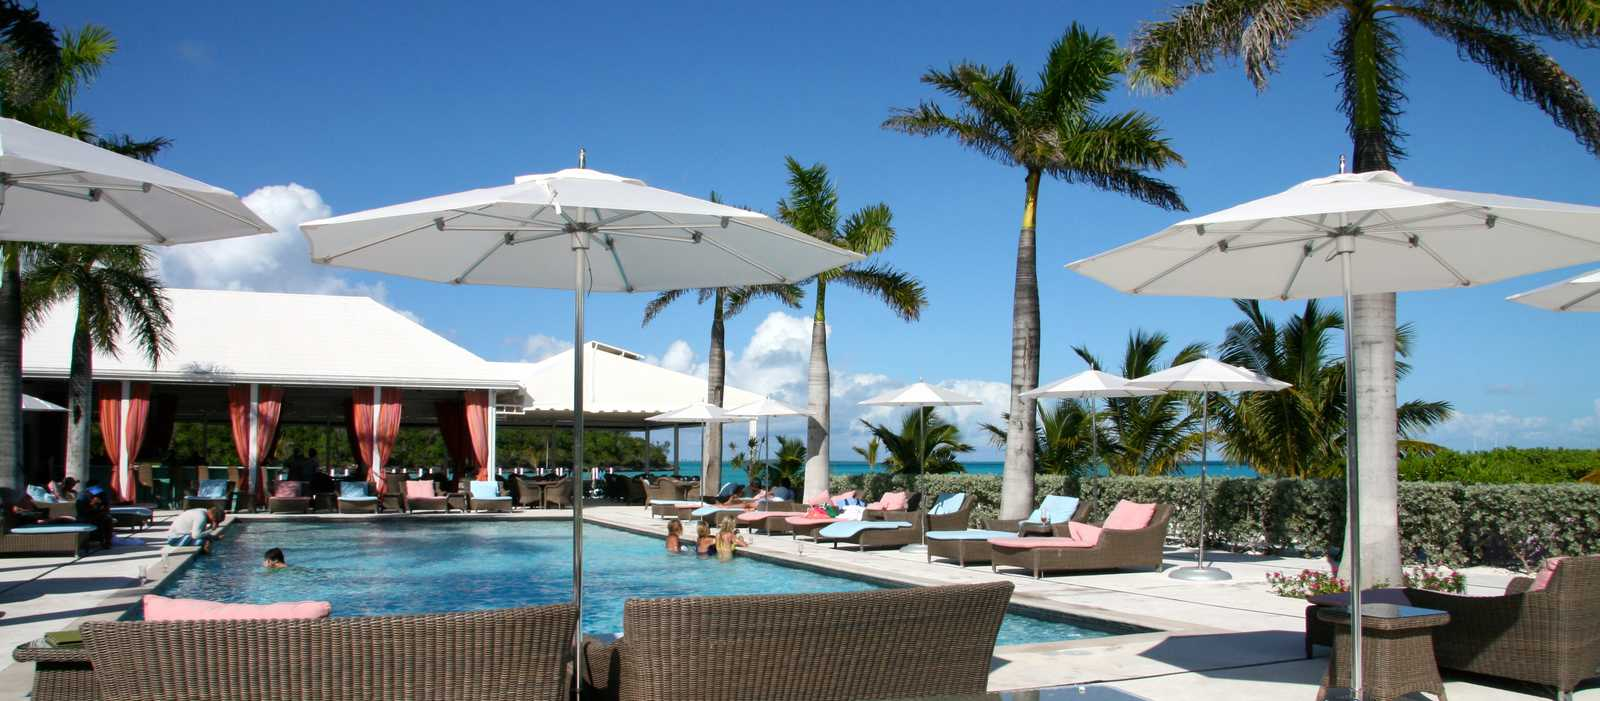 Treasure Sands Club auf Abaco, Bahamas